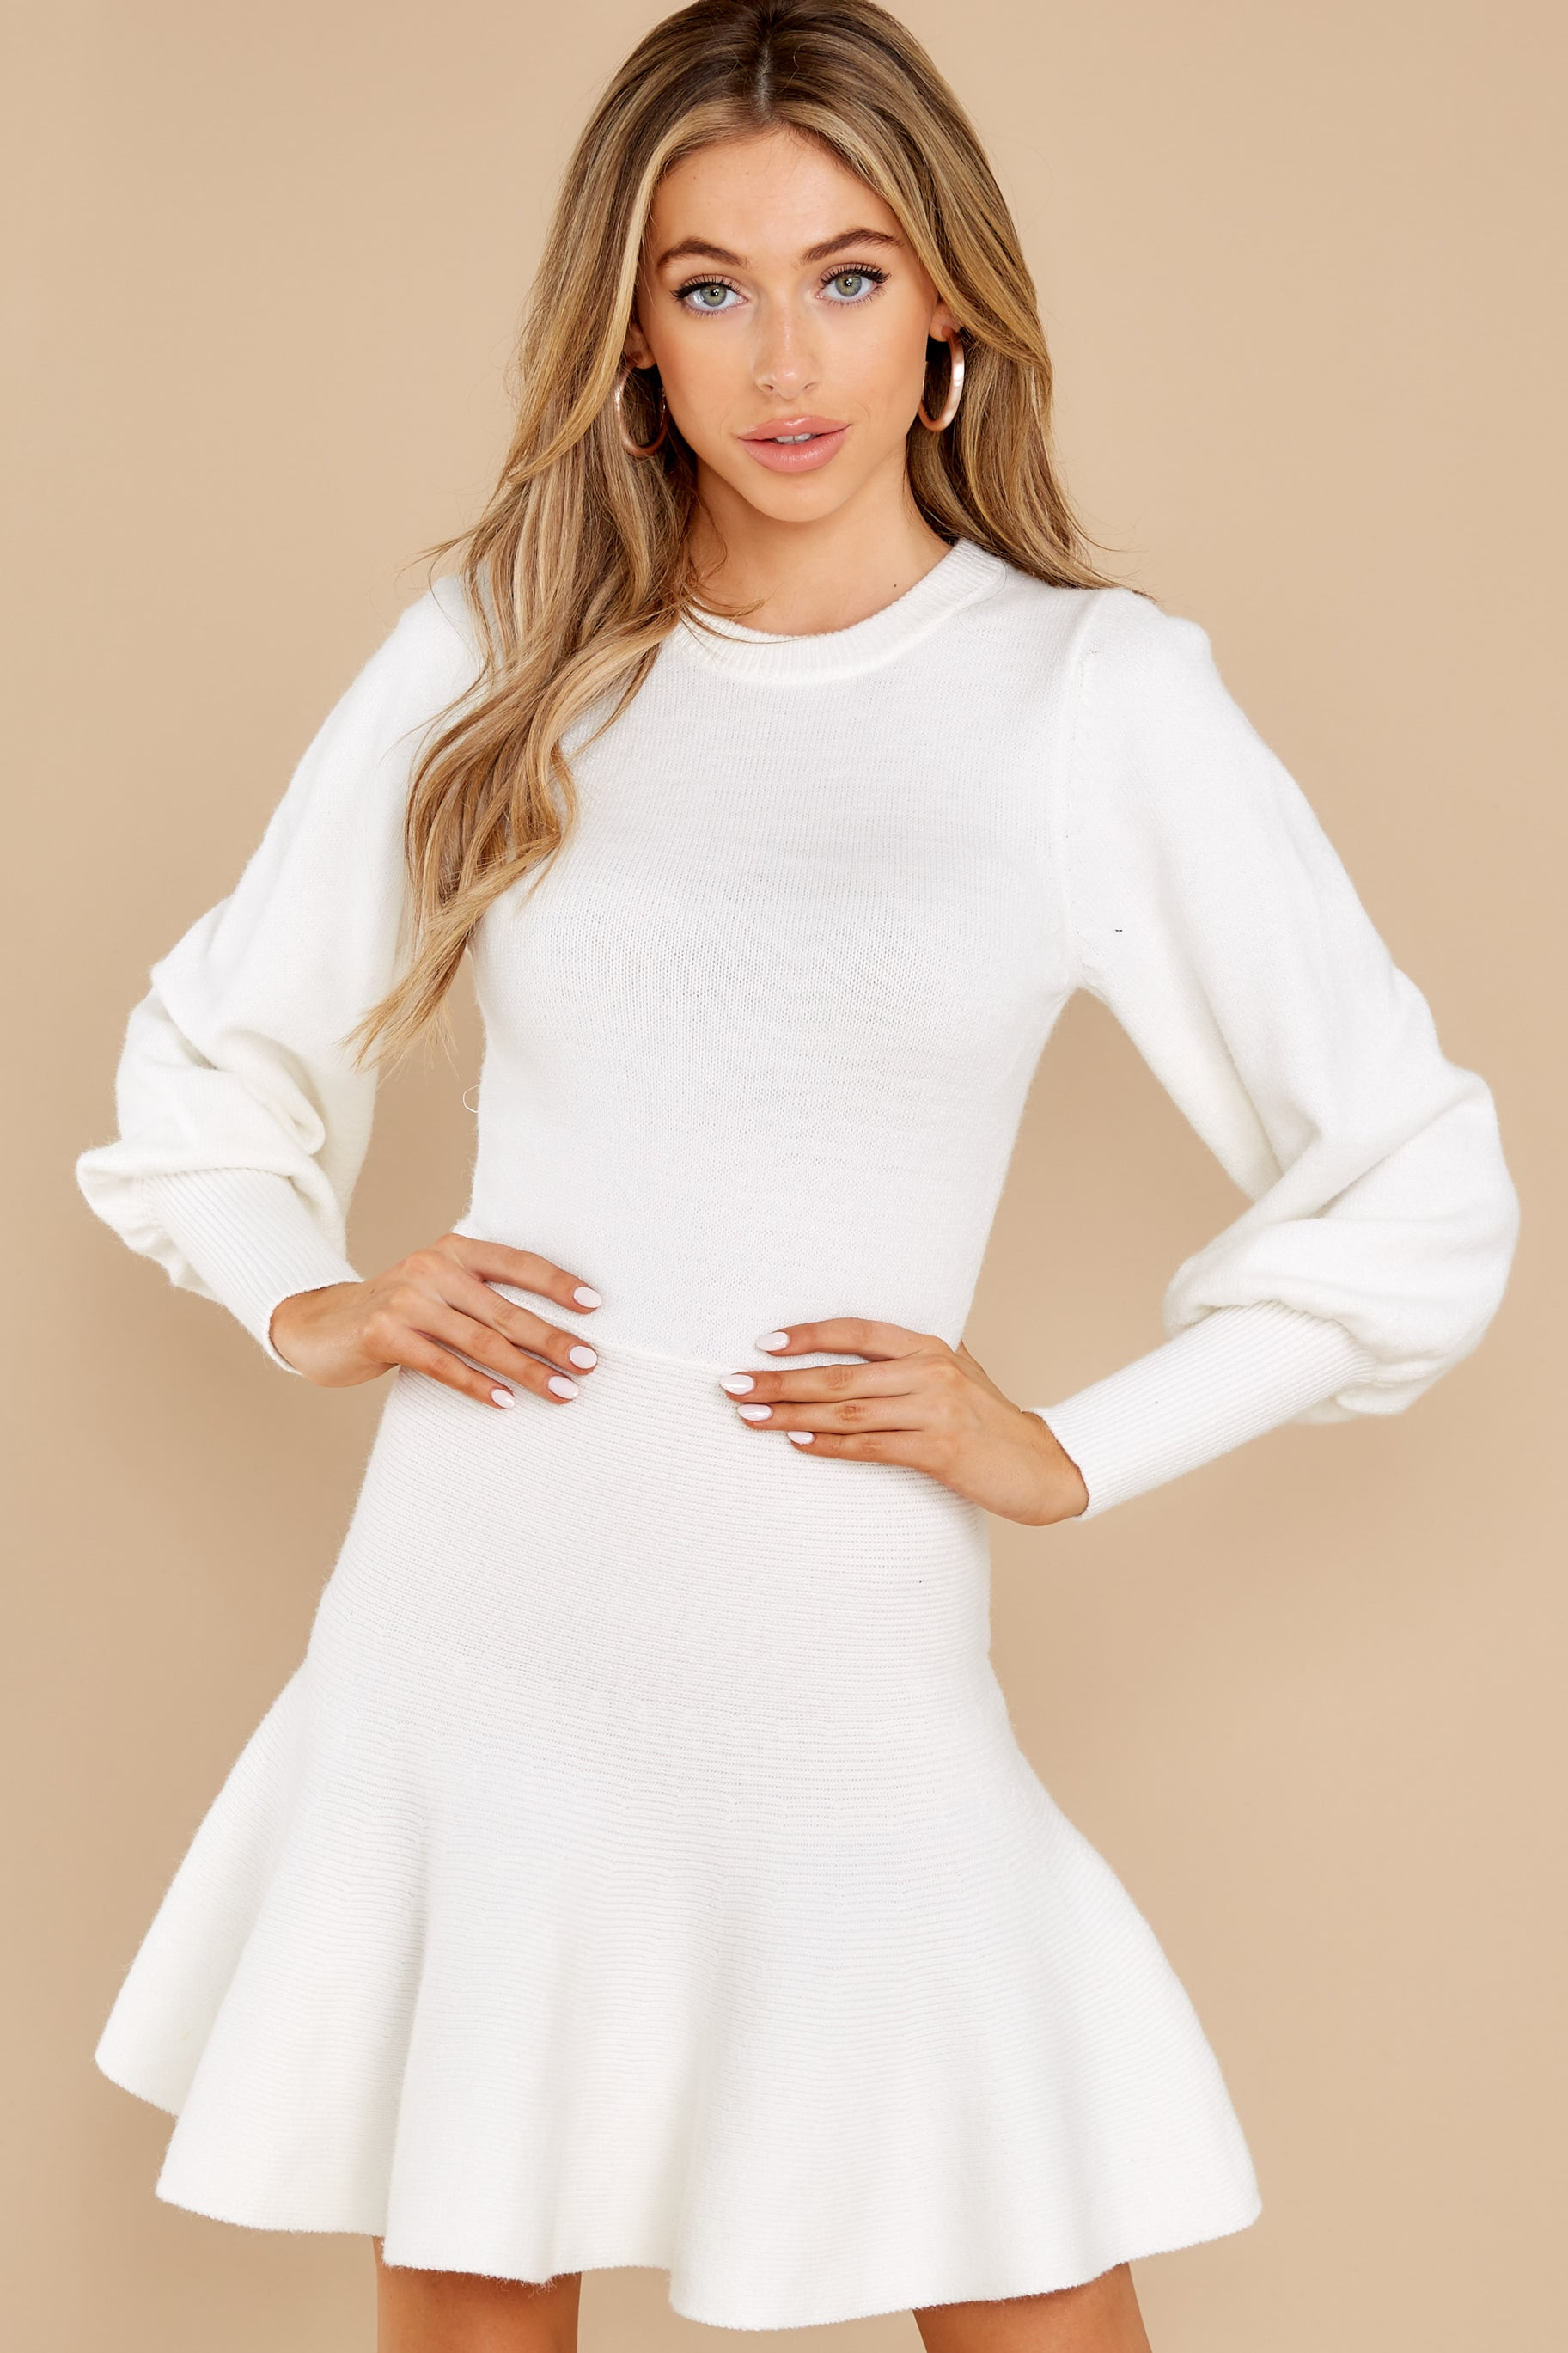 5 Into Me Into You White Sweater Dress at reddress.com